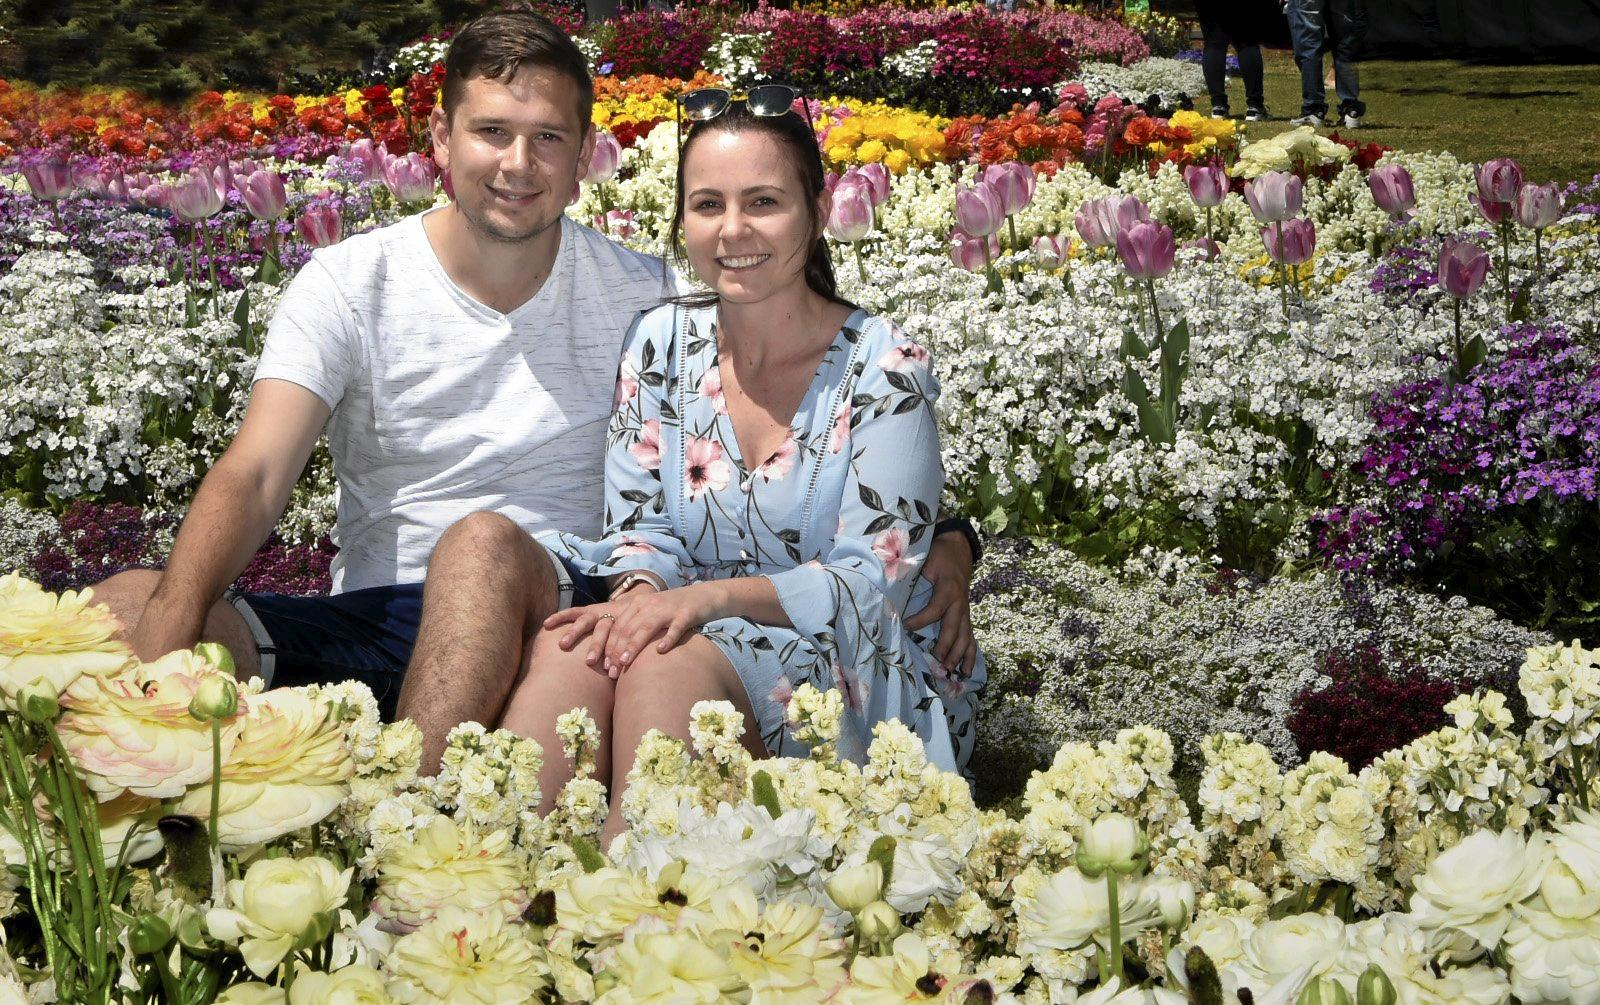 IN BLOOM: Kieran Denton and Madison Elliott sit amongst the flowers at Queens Park on Saturday.